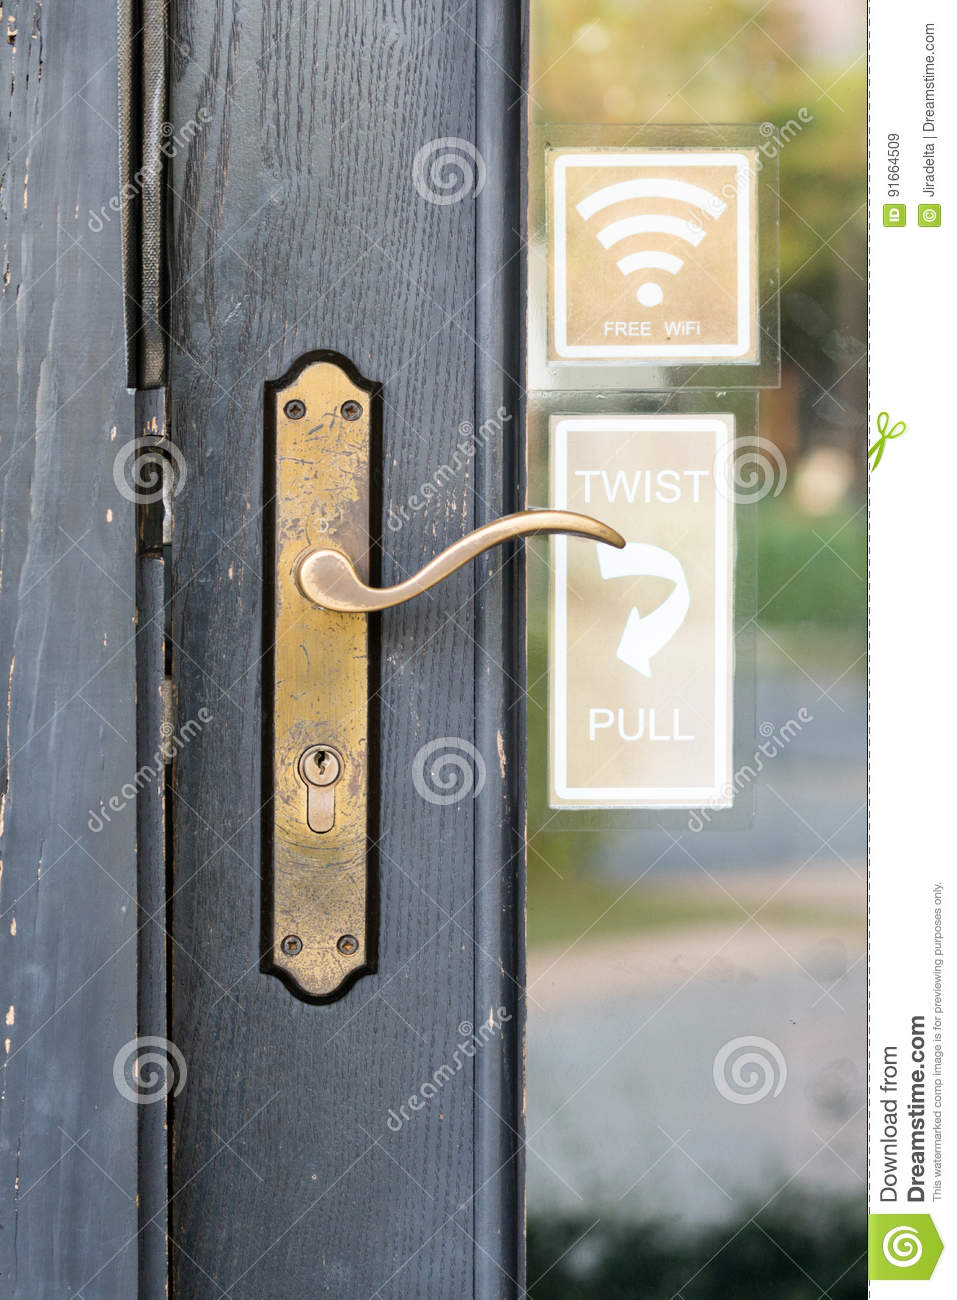 998ae3c403b4 Old Brass Door handles close up with Free Wifi sticker and twist and pull  sticker